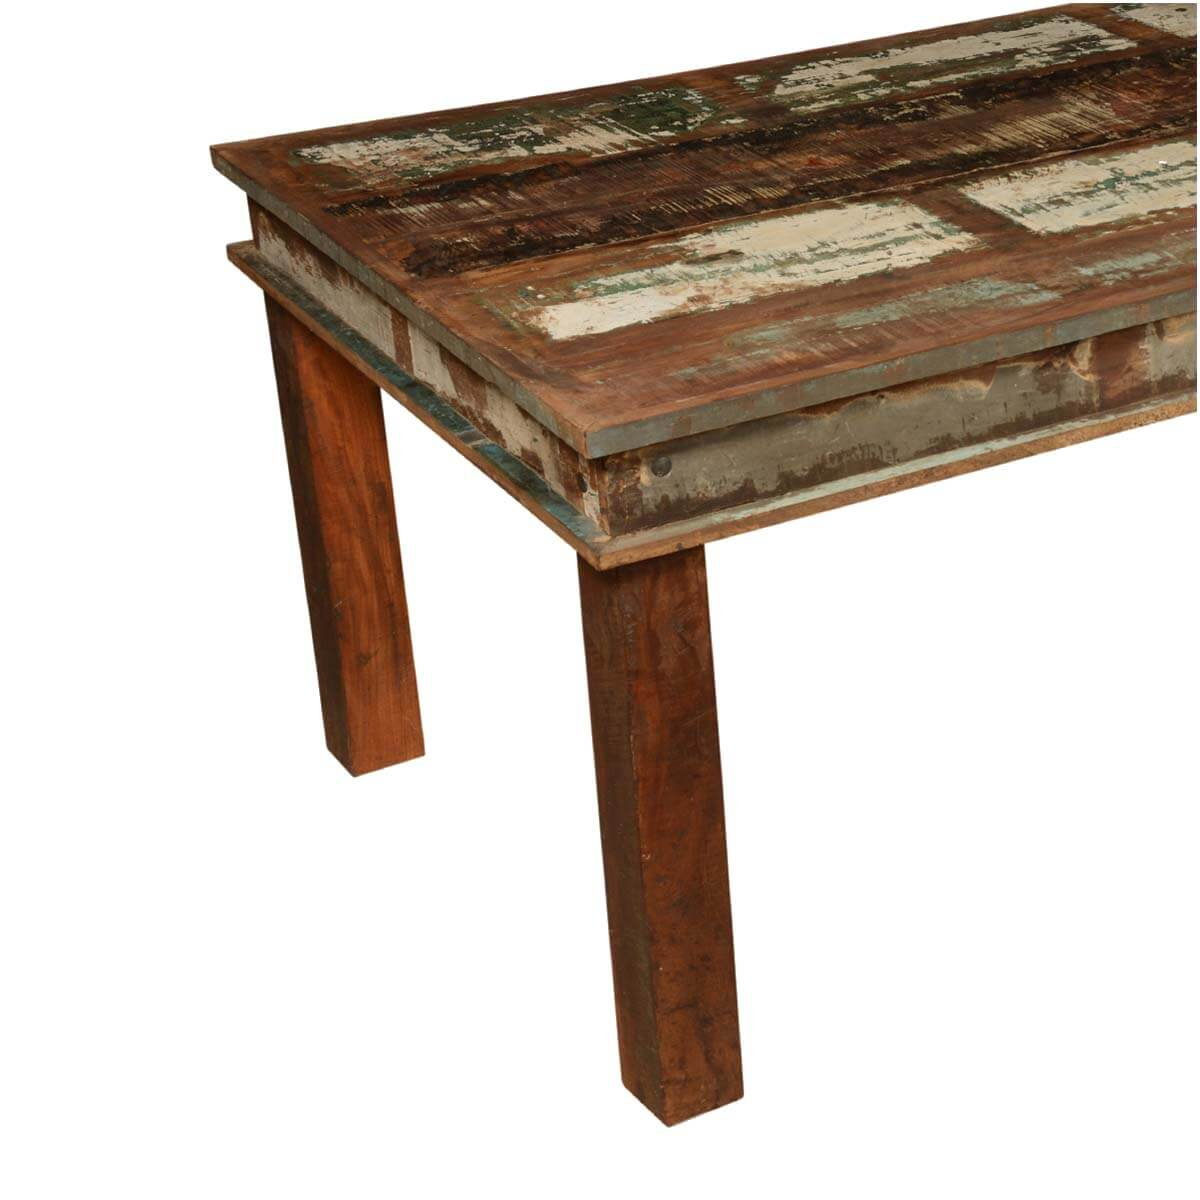 Appalachian distressed reclaimed wood 96 rustic dining table for Hardwood dining table